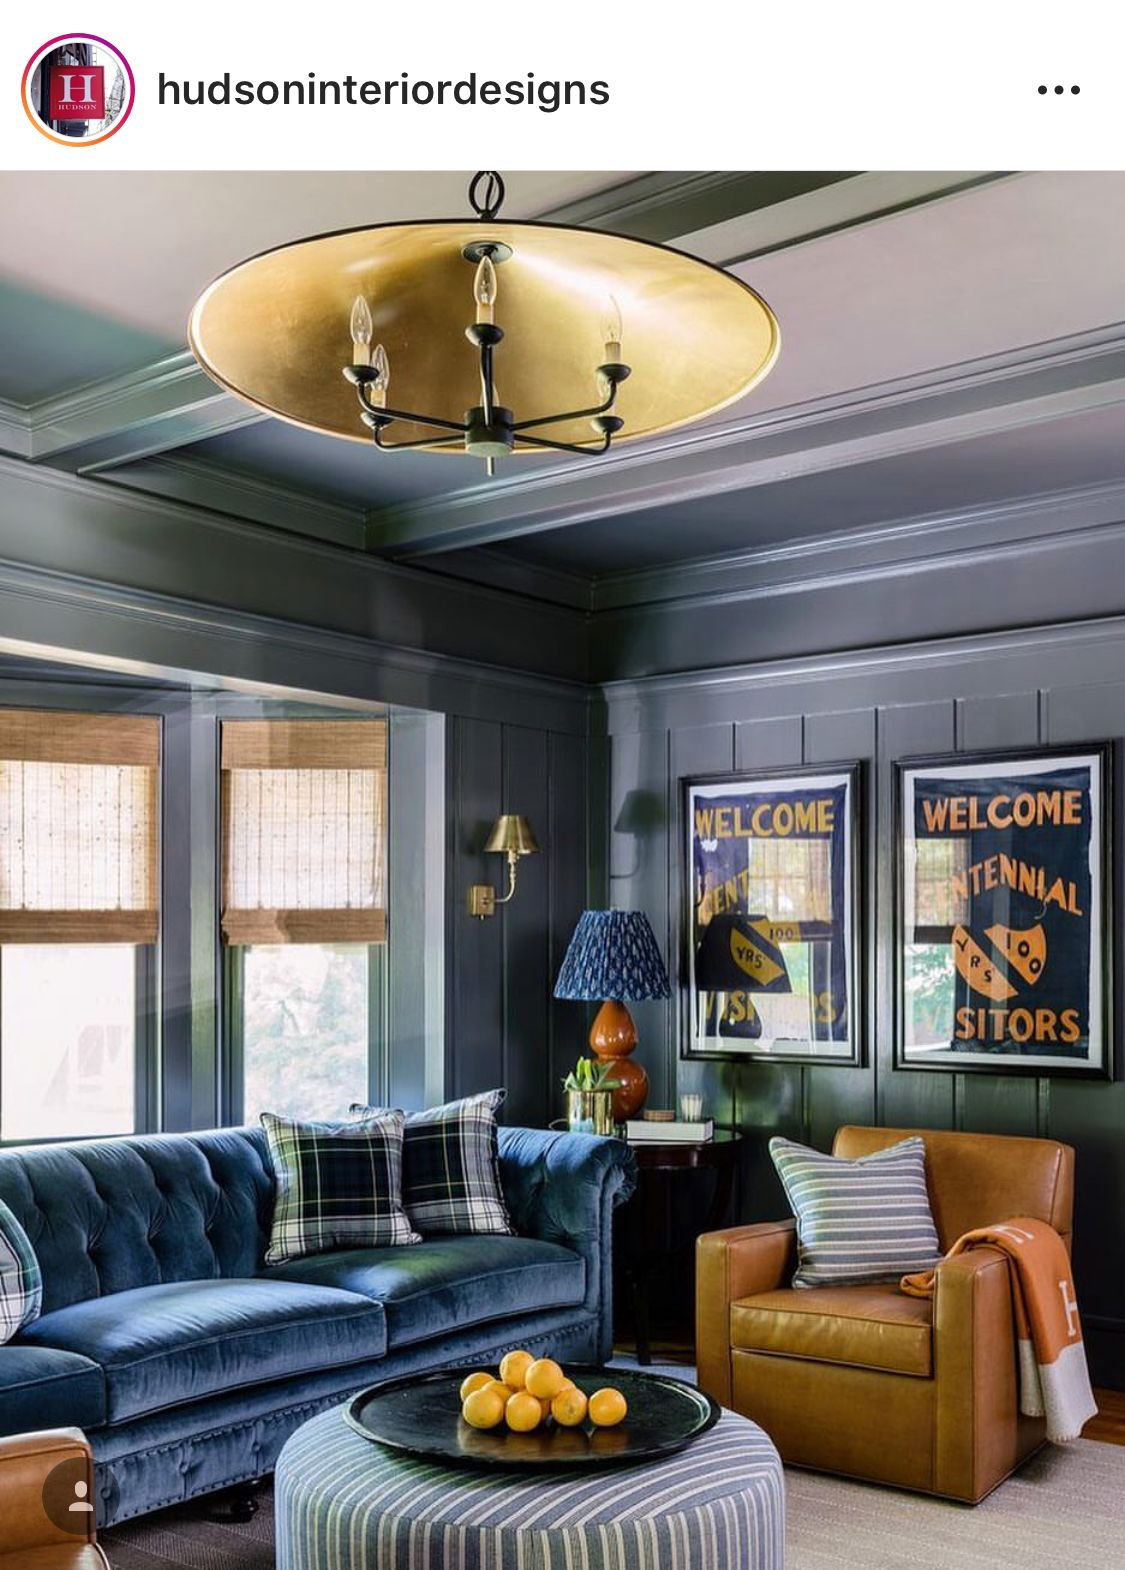 Wall Color And Currey And Co Light Fixture Chesterfield Sofa Living Room Living Room Sofa Blue Accent Chairs